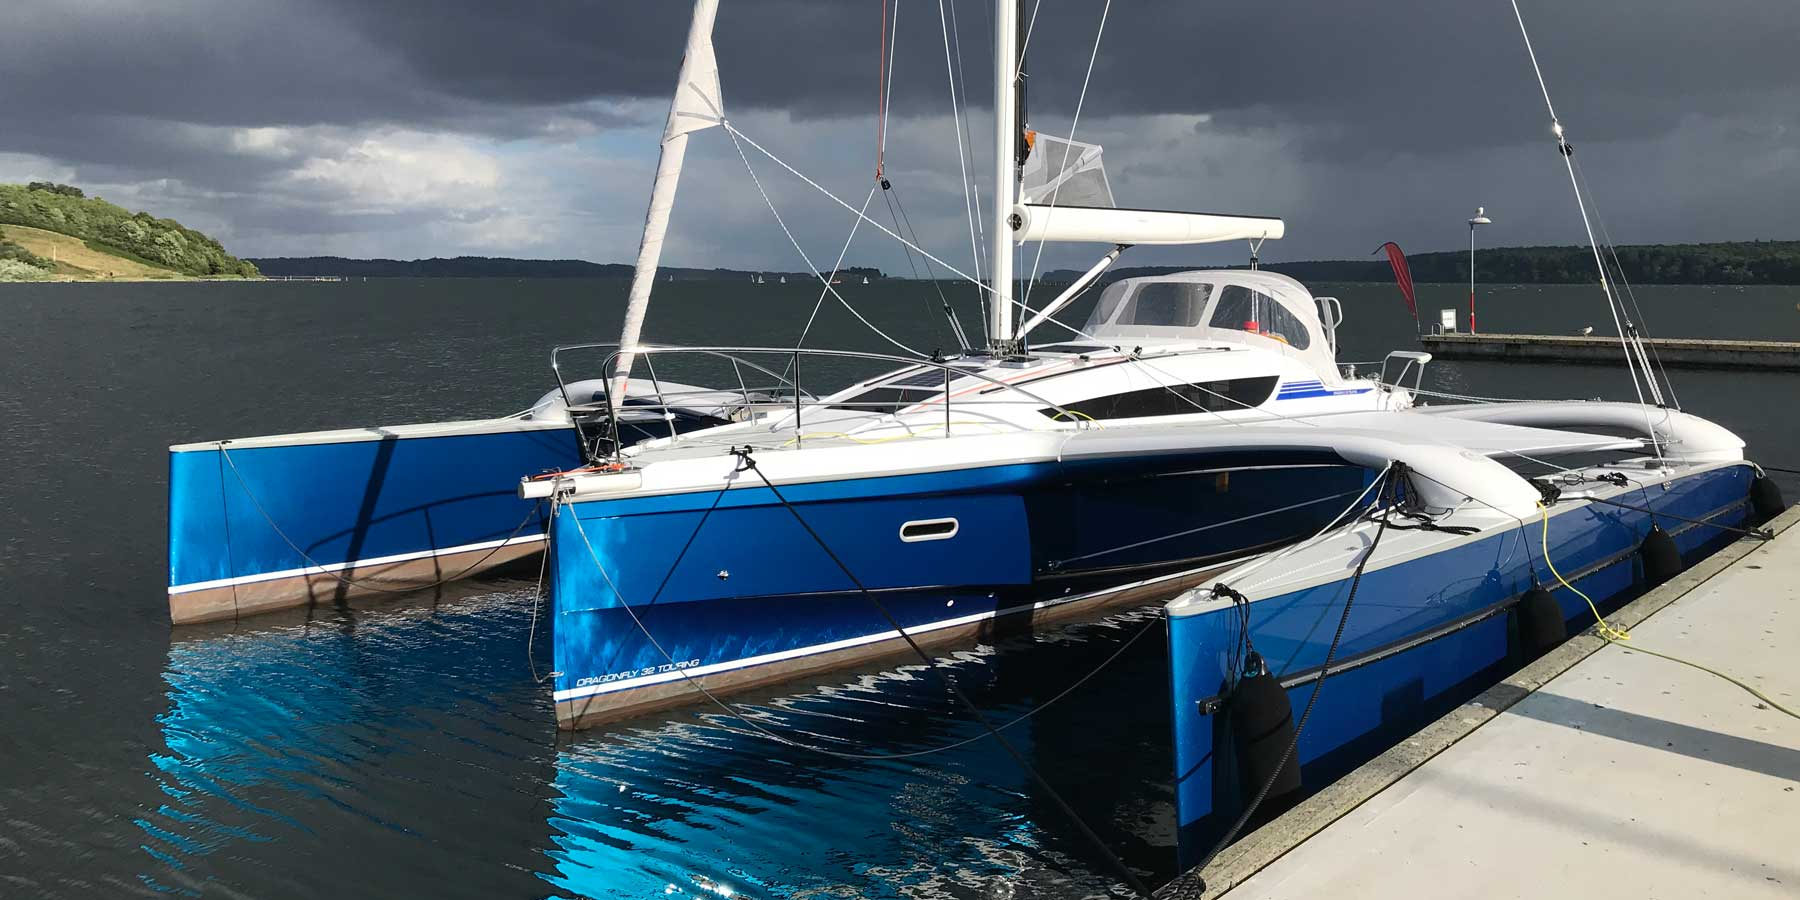 Dragonfly 32 for sale, Touring version